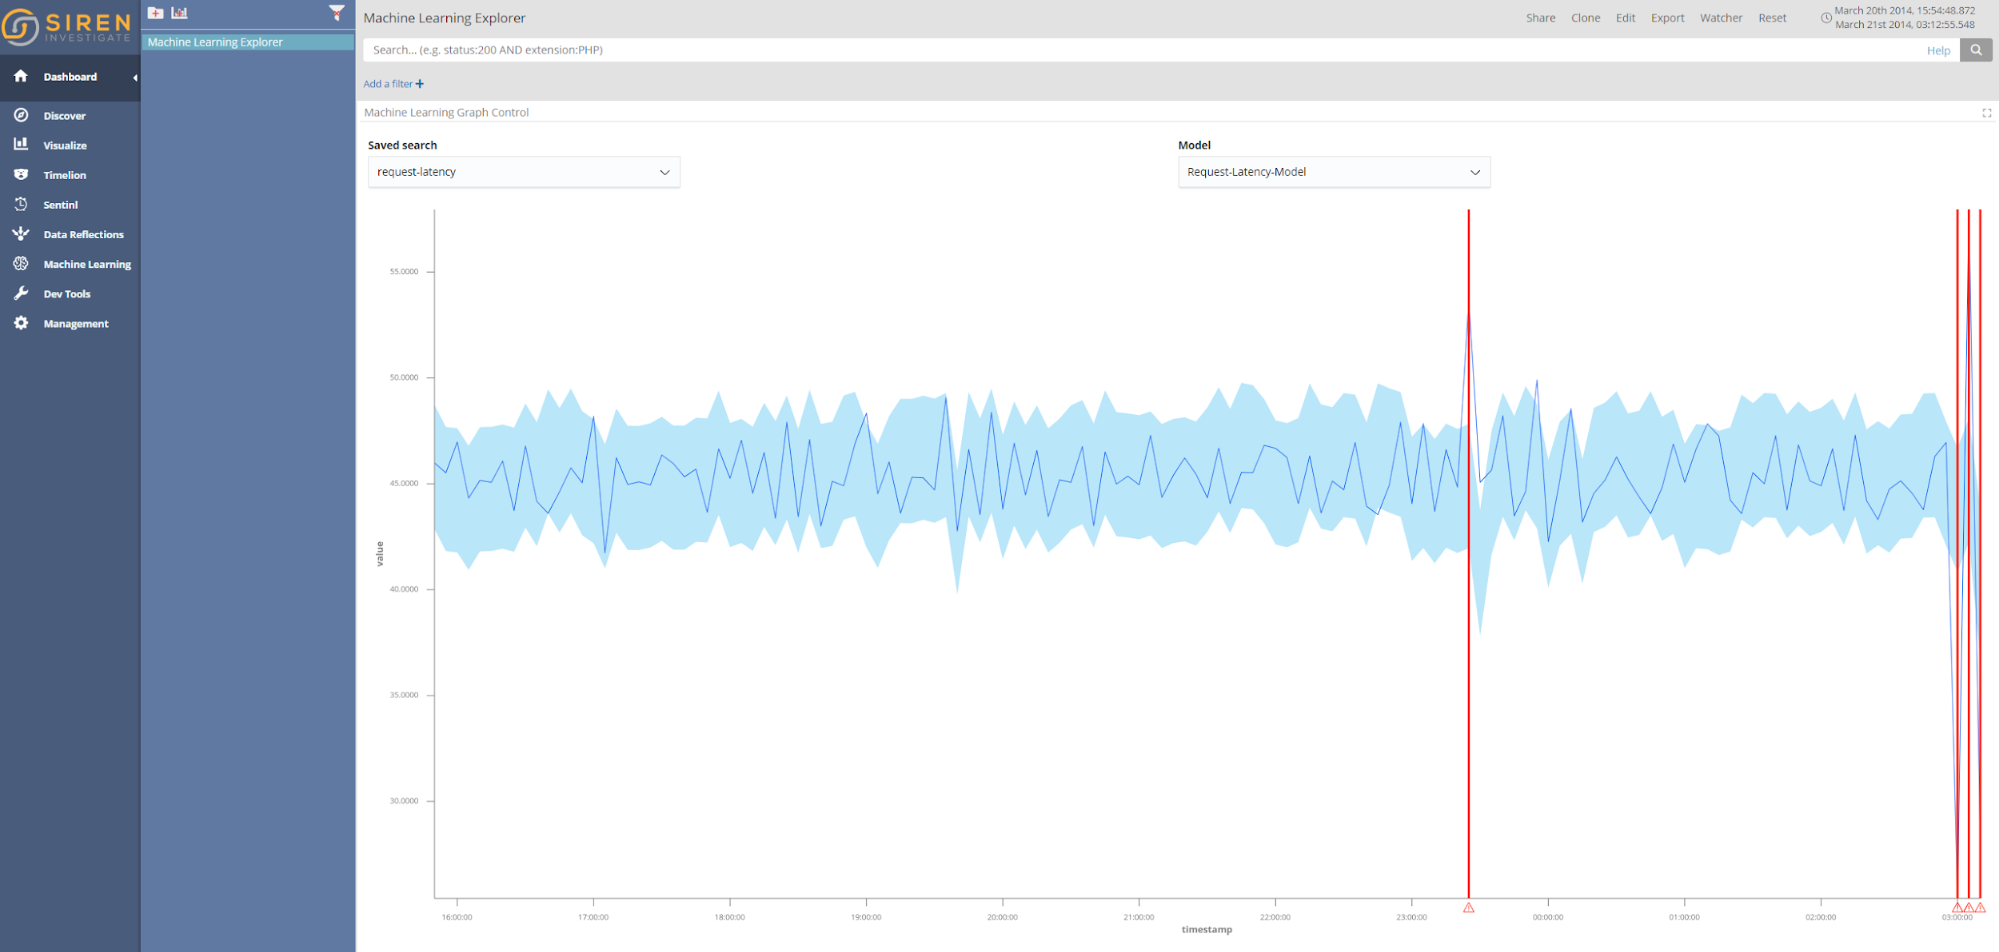 Siren ML - CPU usage anomaly detection example